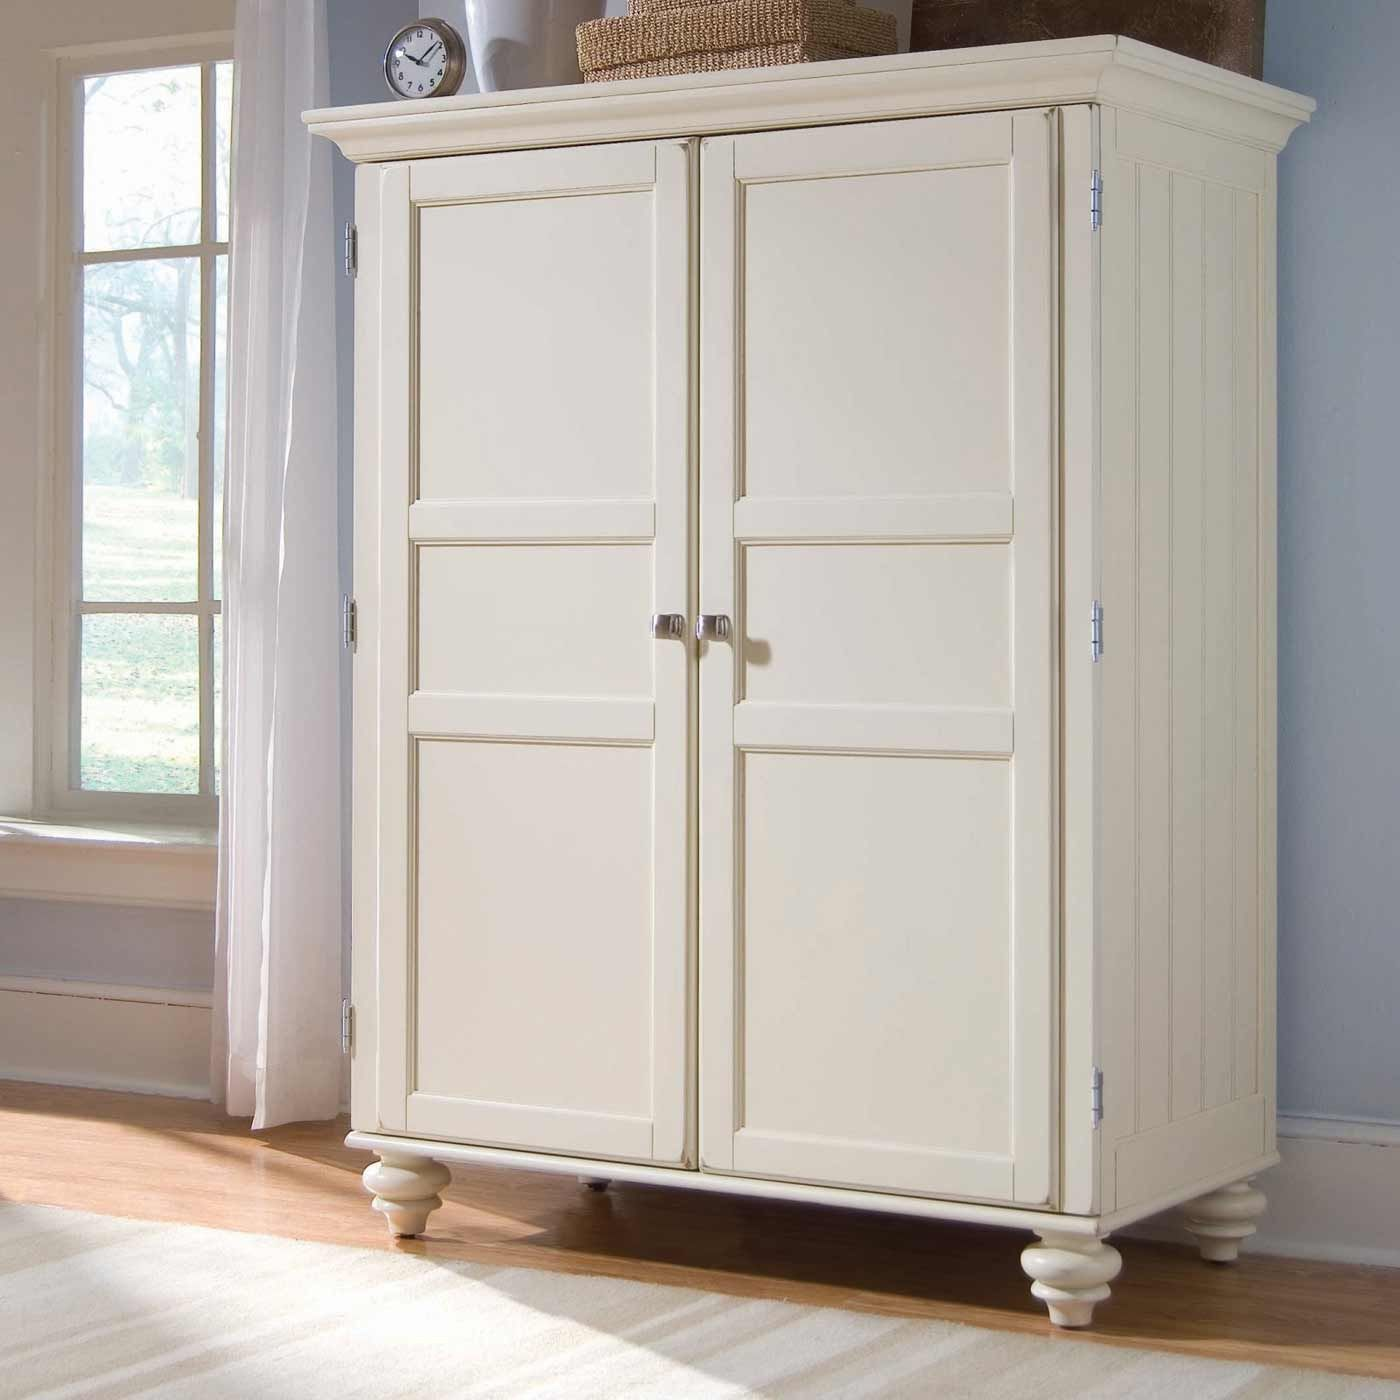 White armoire morgan cheap armoire desk in cream white for White bedroom cabinet